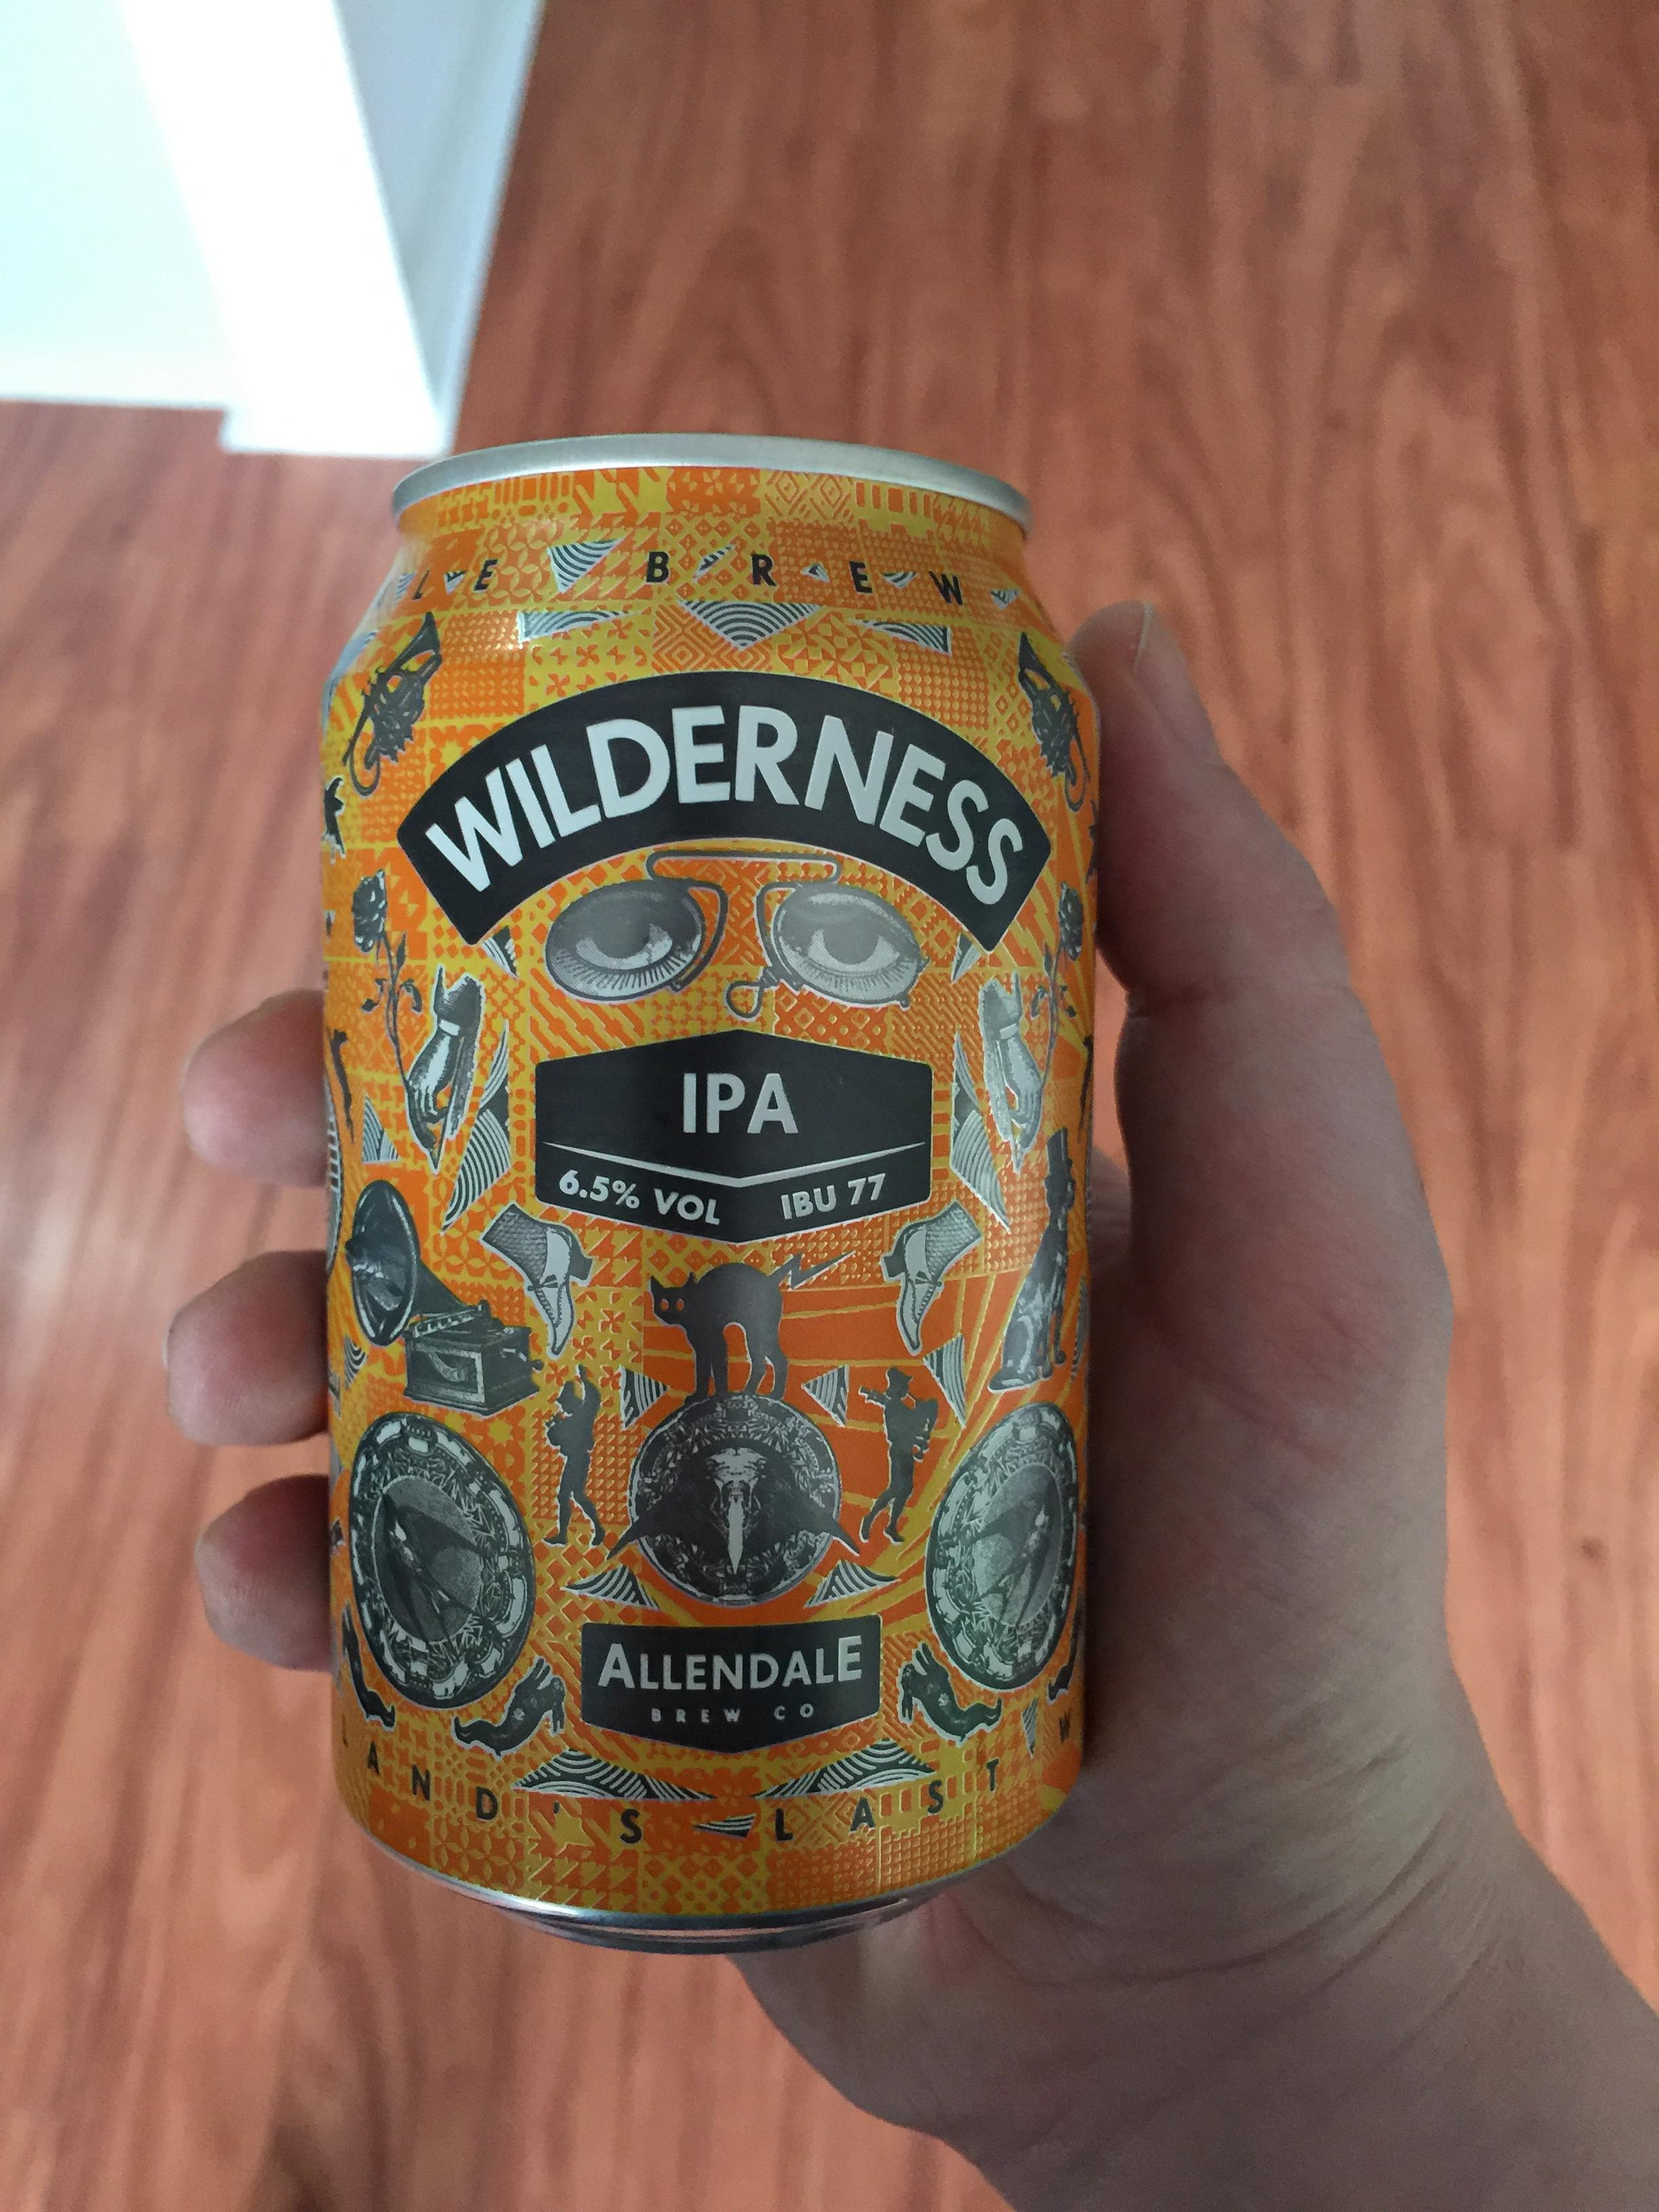 Read more about the article Wilderness IPA